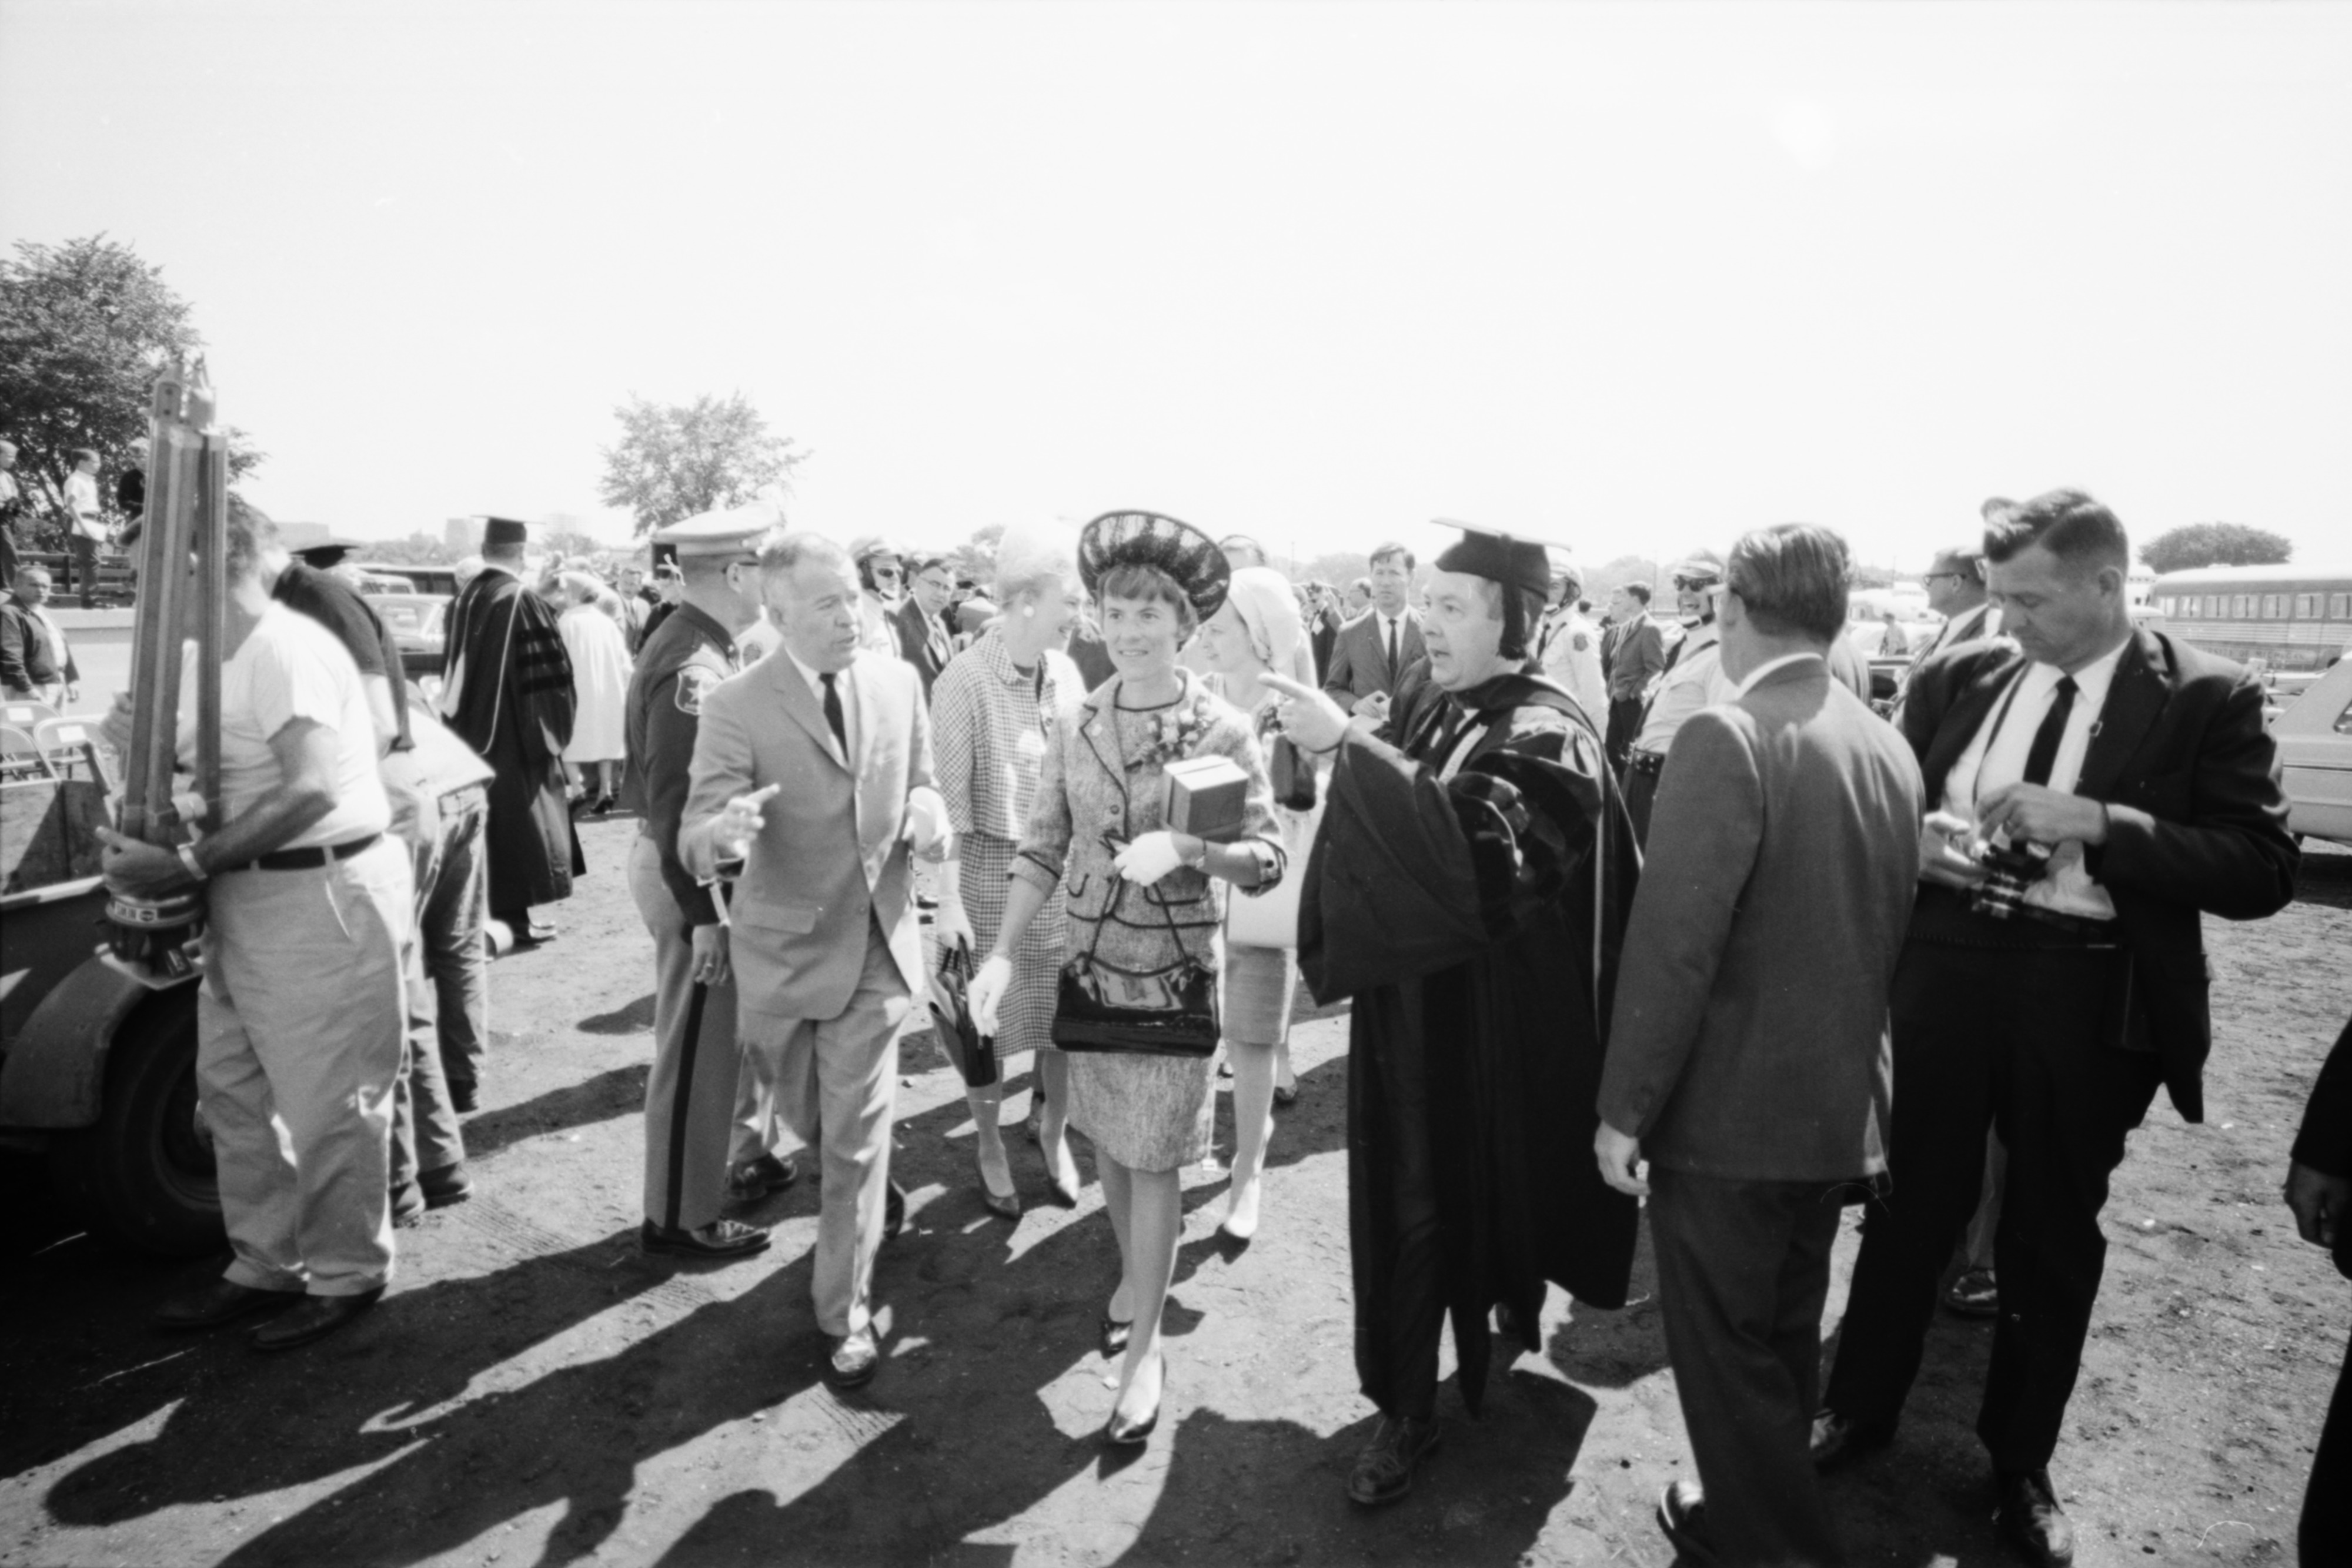 Astronauts' Wives Arriving at Convocation image